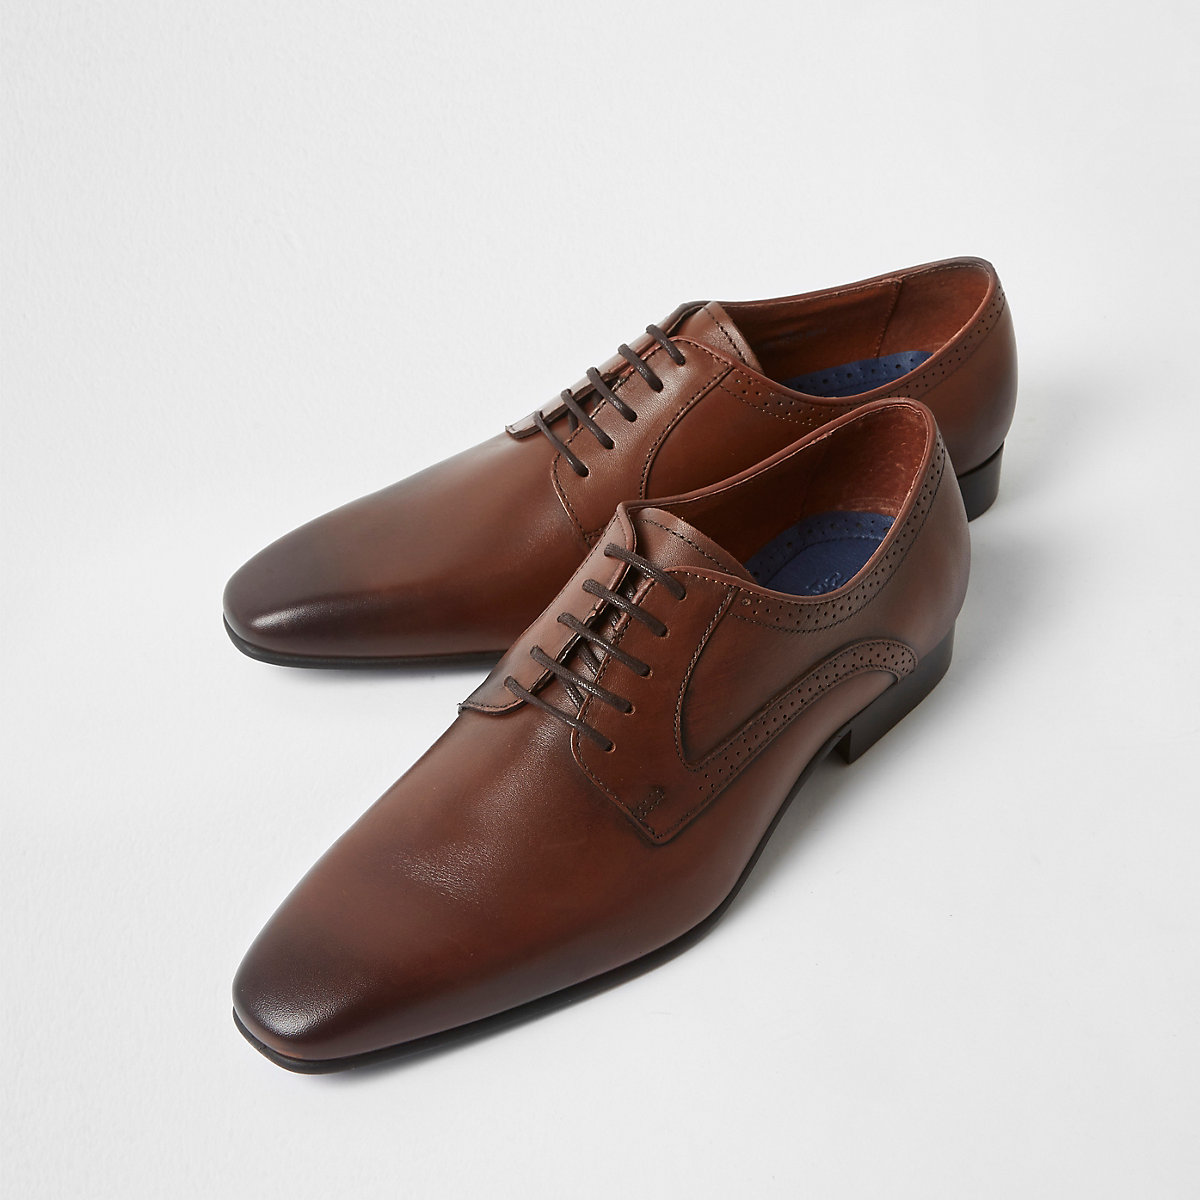 Brown square toe leather derby shoes